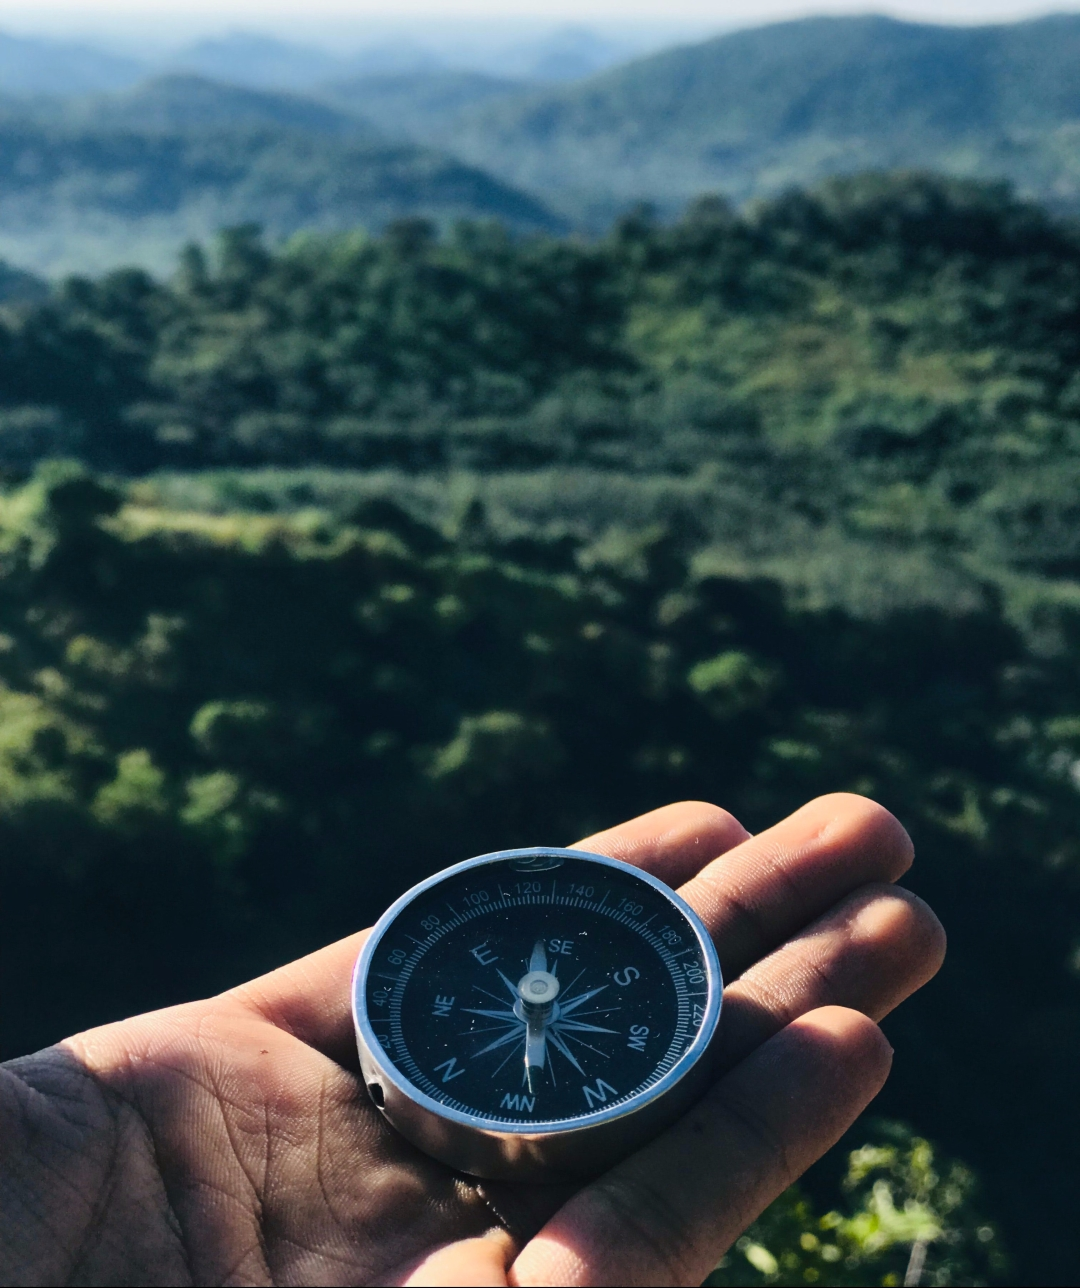 Photo of a hand holding a compass outside